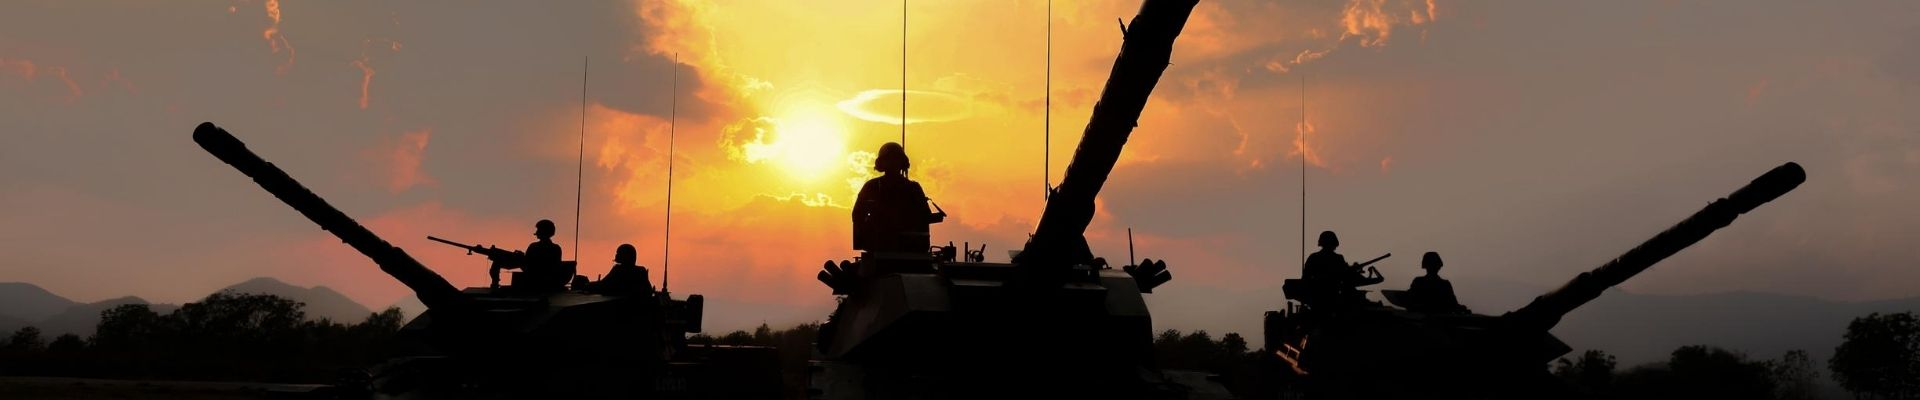 Tanks in the sunset